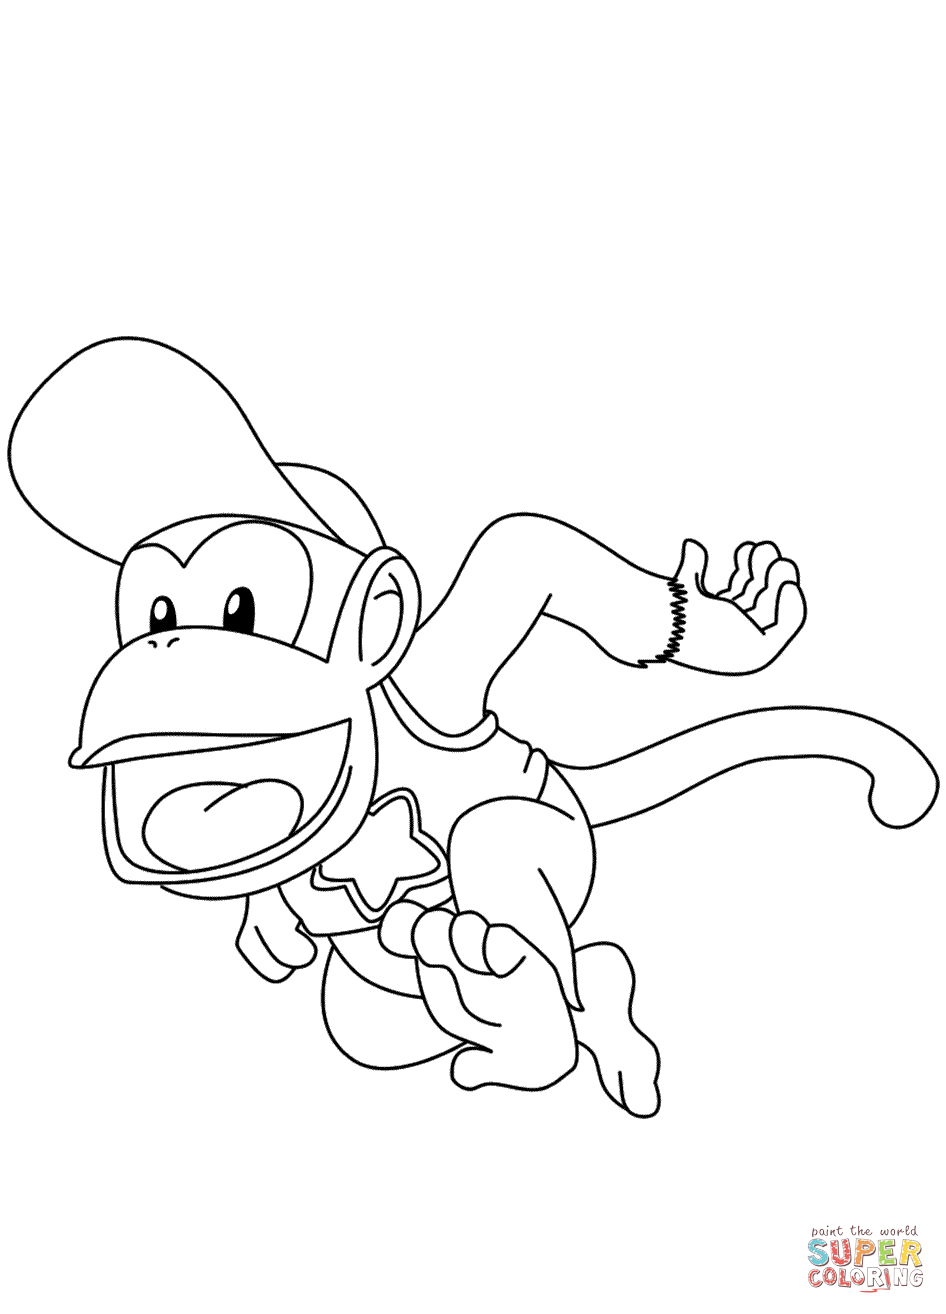 946x1314 Diddy Kong Coloring Page Free Printable Coloring Pages